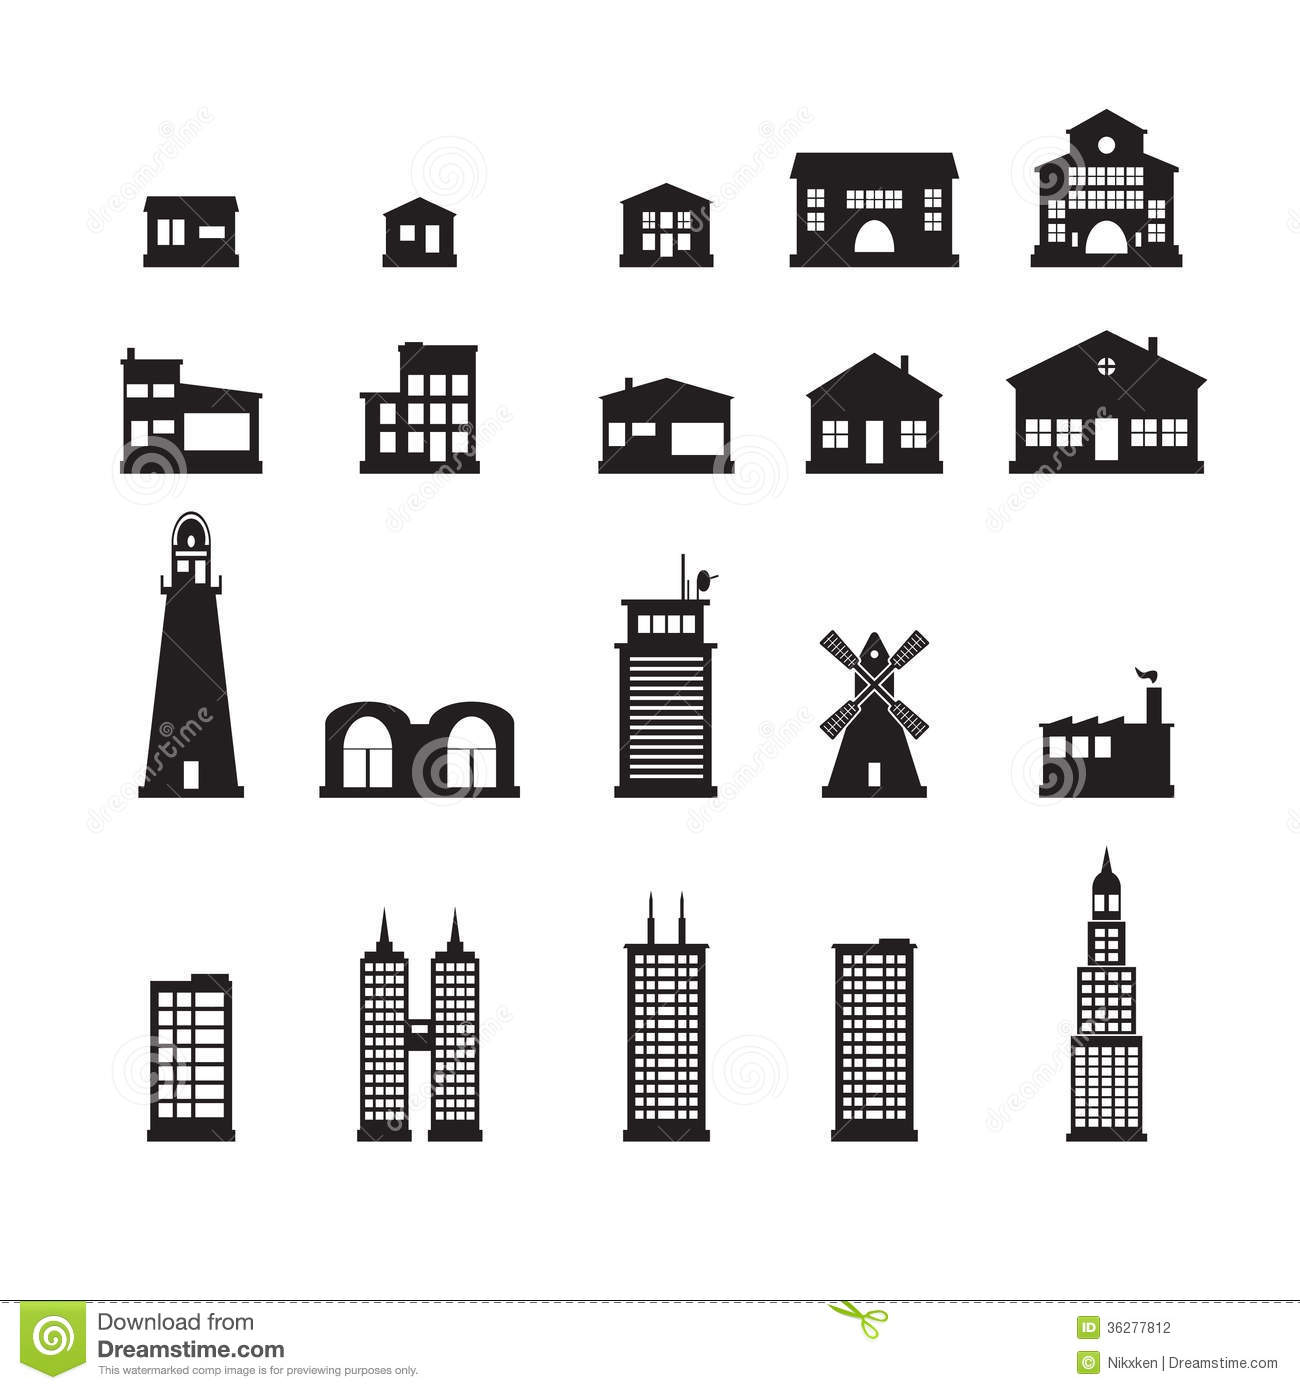 Garage door clip art - Building Icons Set Stock Photography Image 36277812